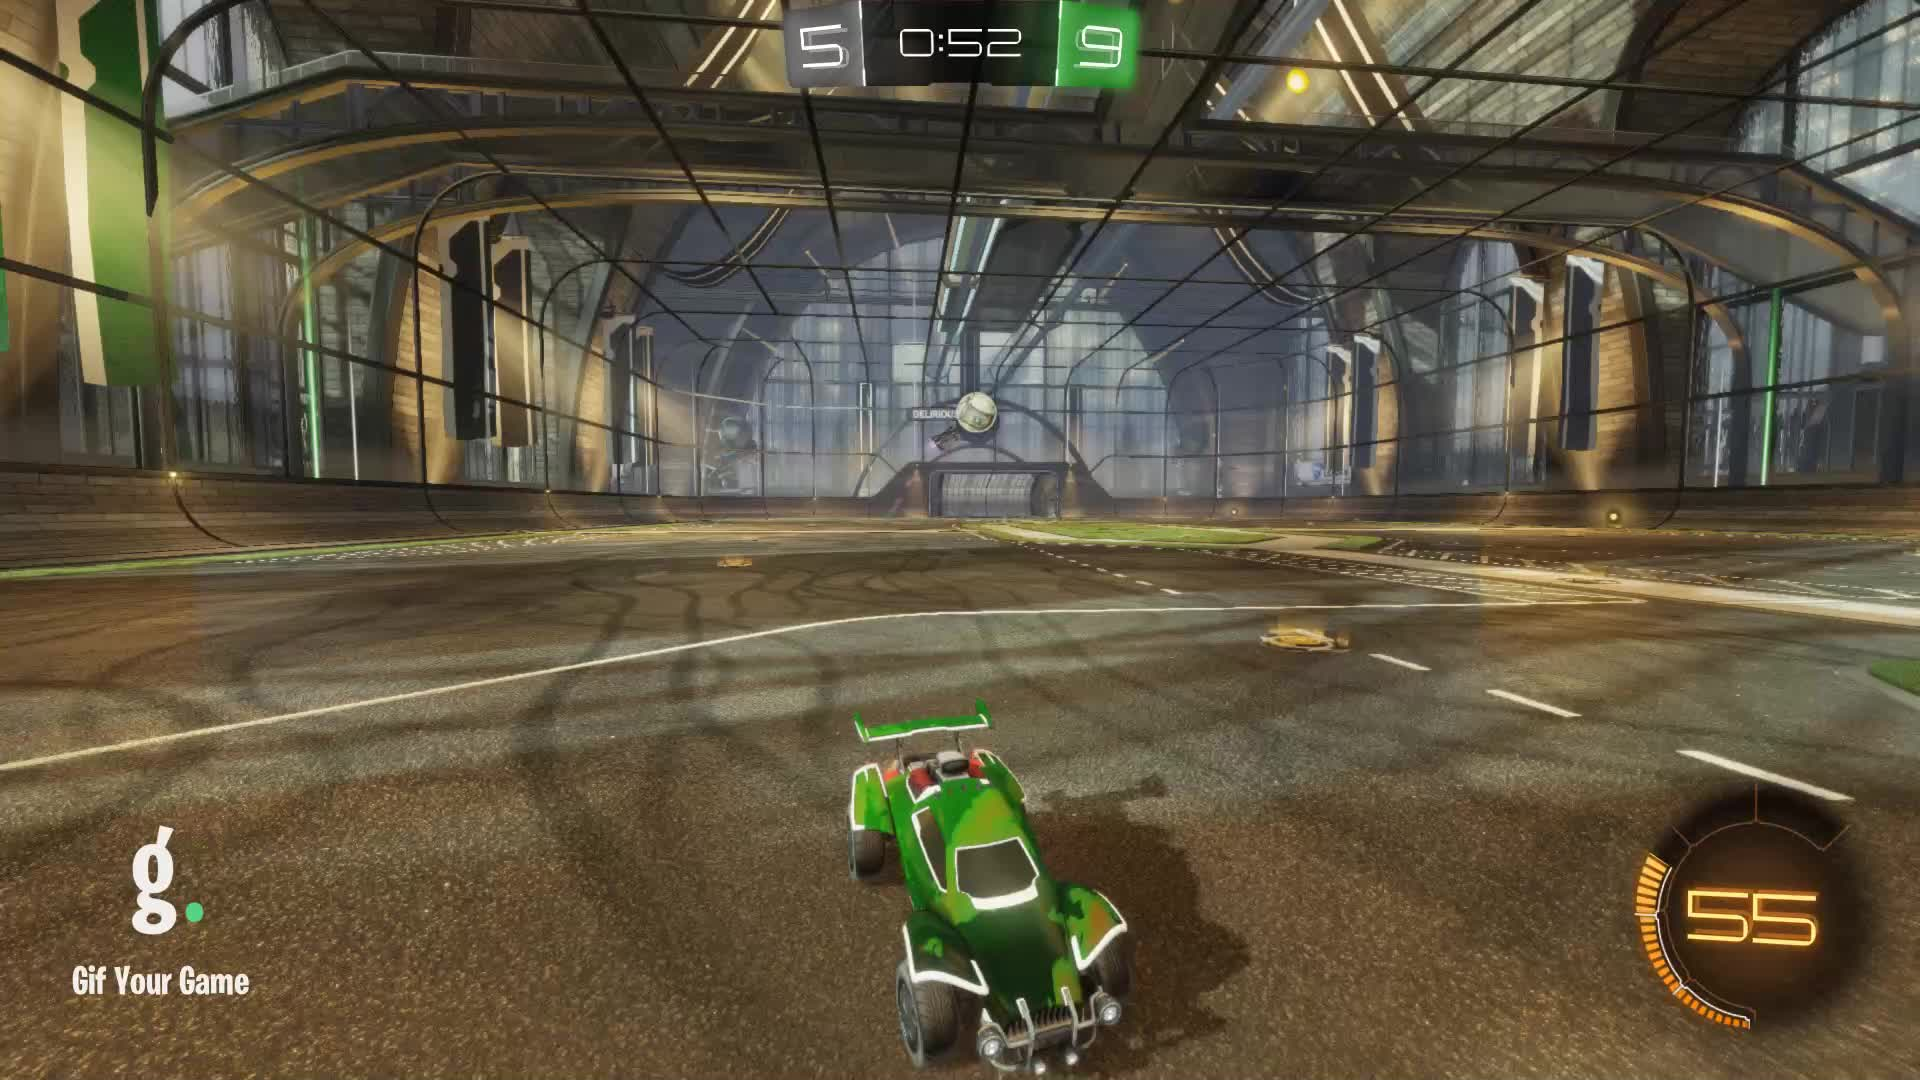 Gif Your Game, GifYourGame, Linux Cow | Ceiling shots only?, Rocket League, RocketLeague, Save, Save 2: Linux Cow | Ceiling shots only? GIFs